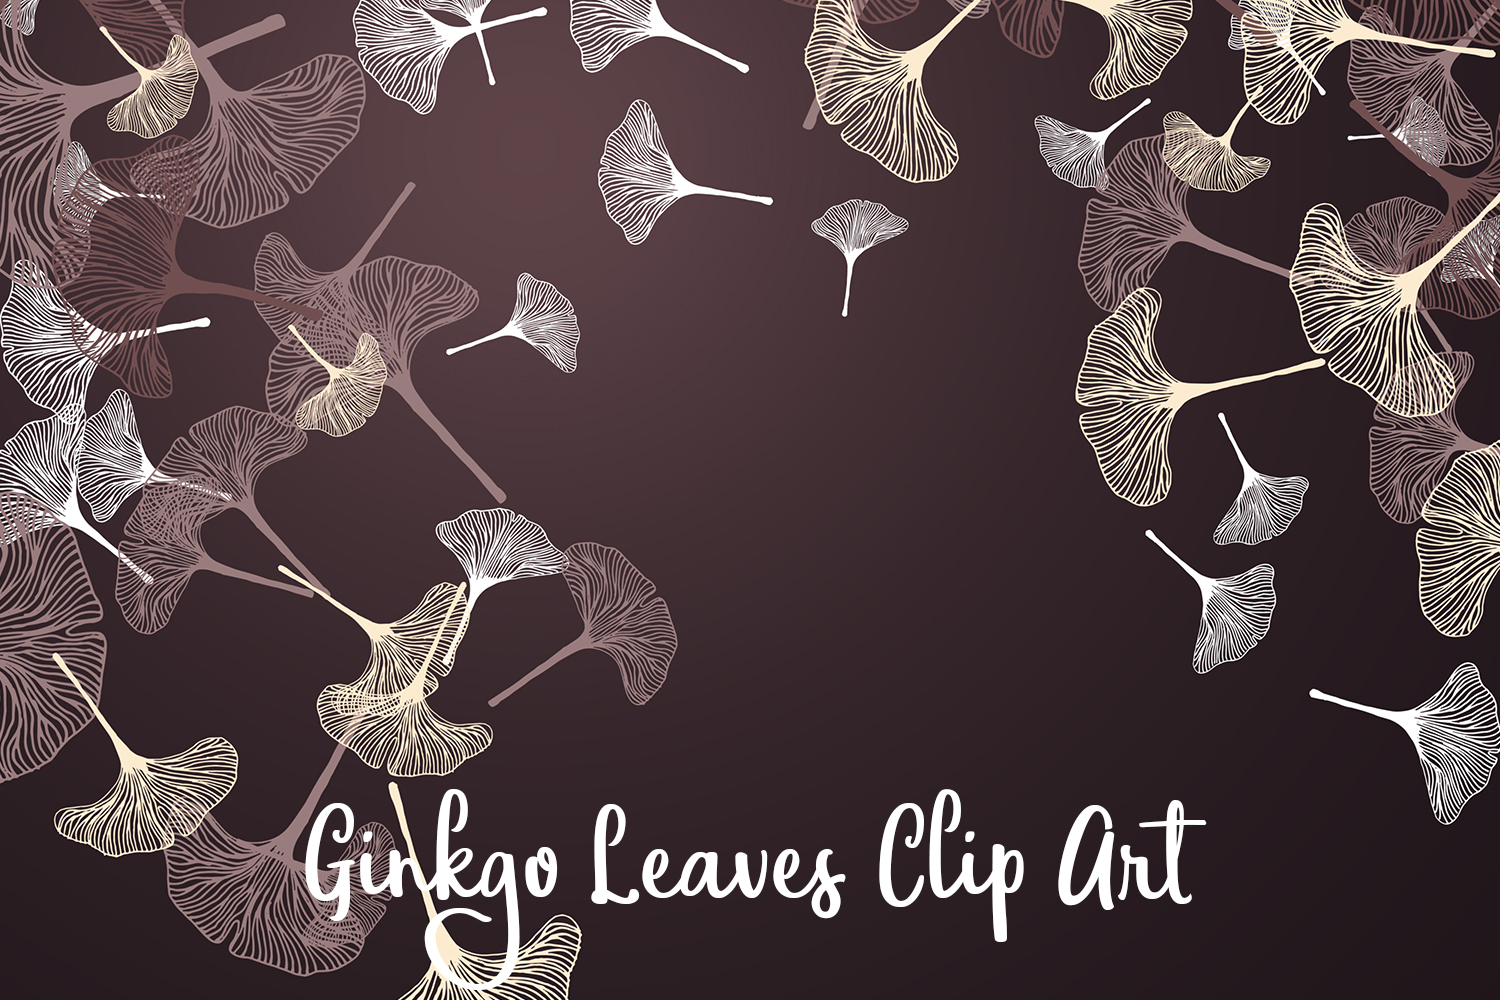 Ginkgo Leaves Clip Art, Vectors, PNGs and Digital Brushes example image 3